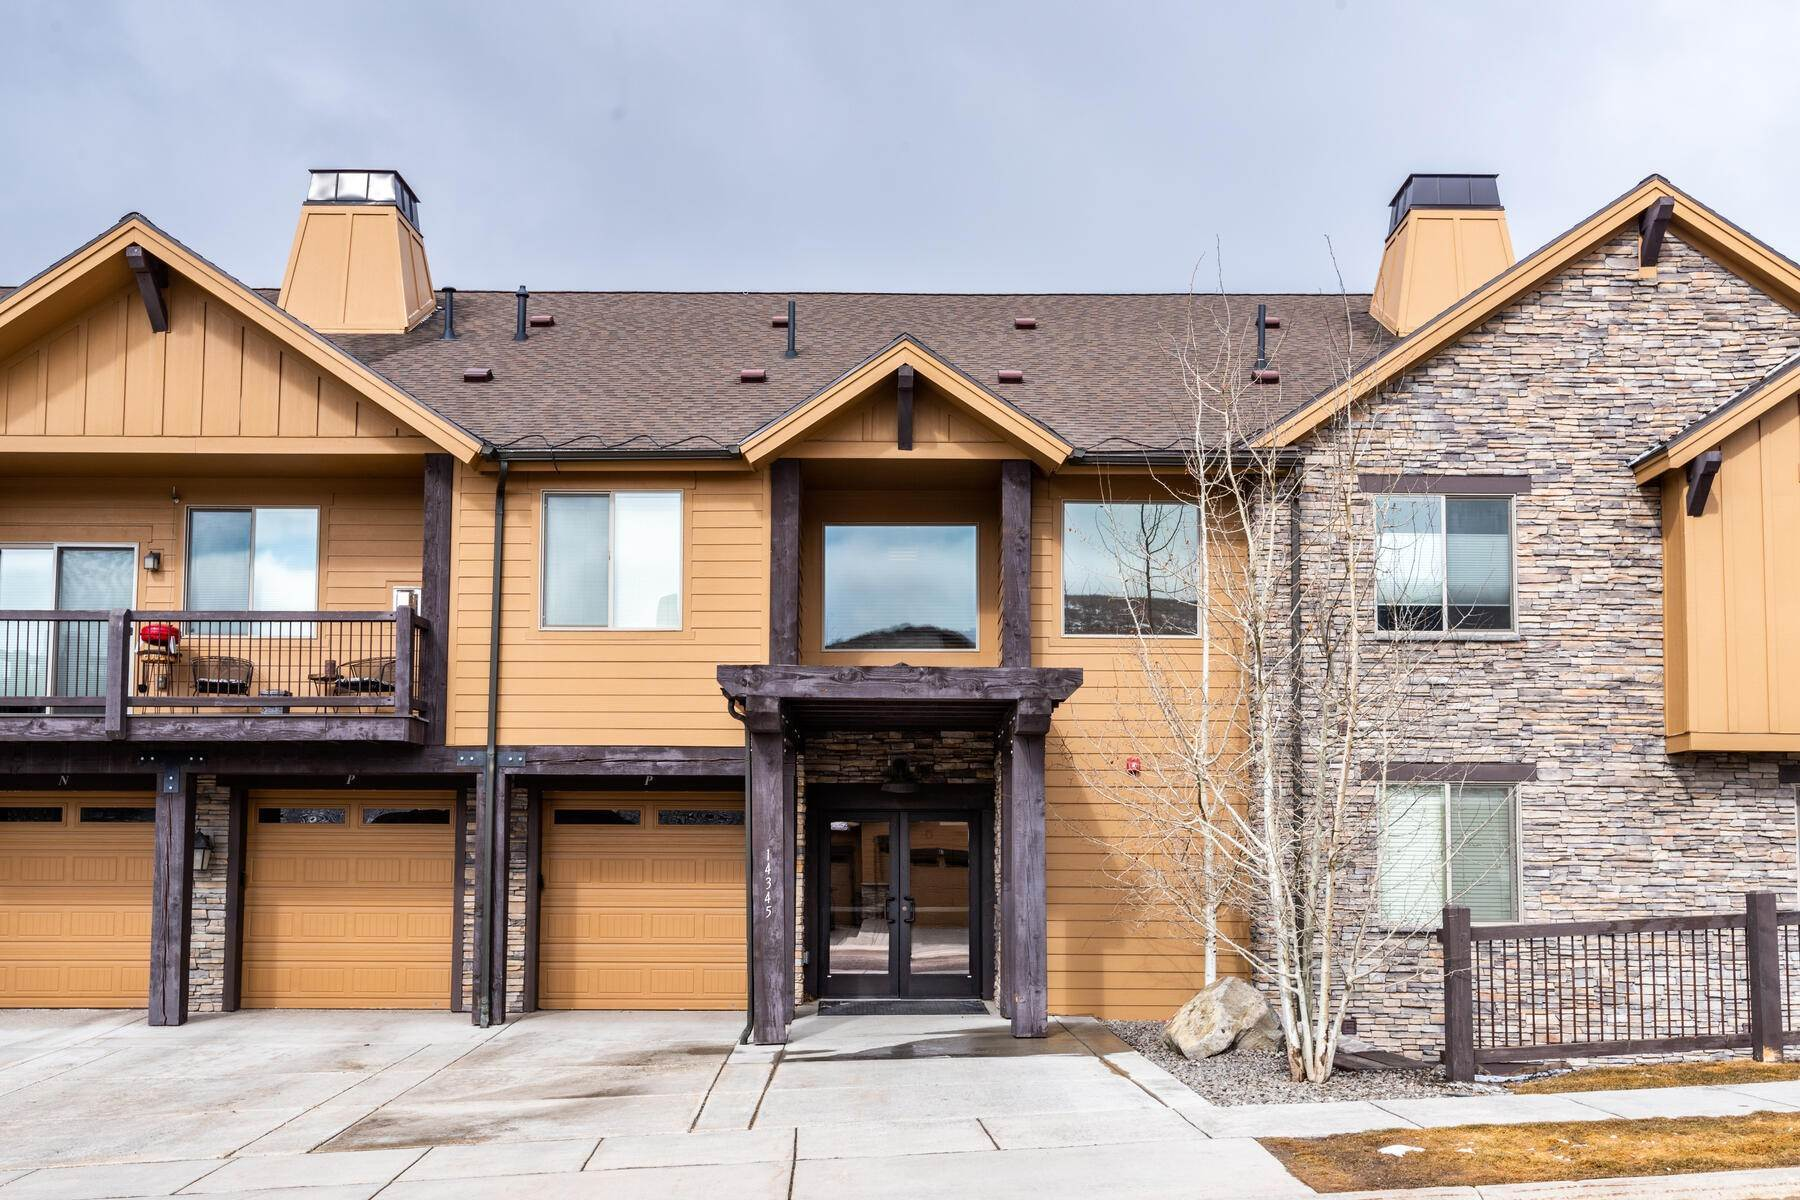 19. Condominiums for Sale at 3 Bedrooms Under $500k Within Minutes of Park City 14345 N Buck Horn Trail E Kamas, Utah 84036 United States